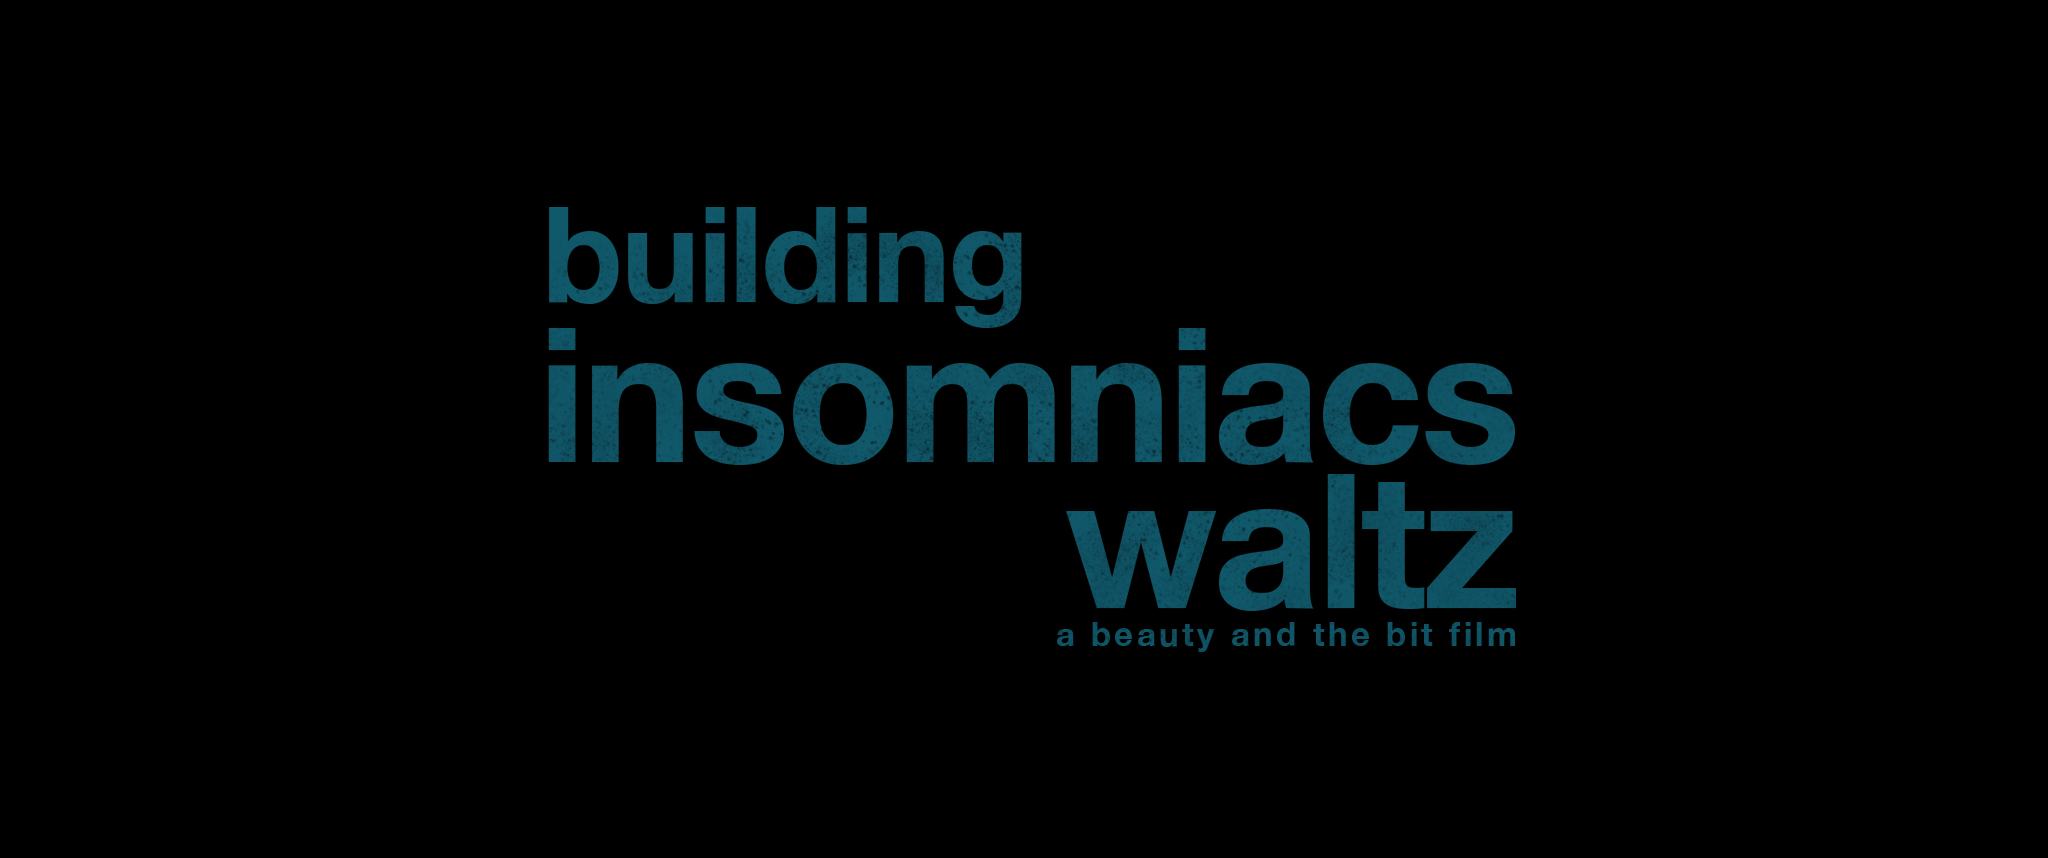 Insomniacs Waltz Making Of, Beauty and The Bit